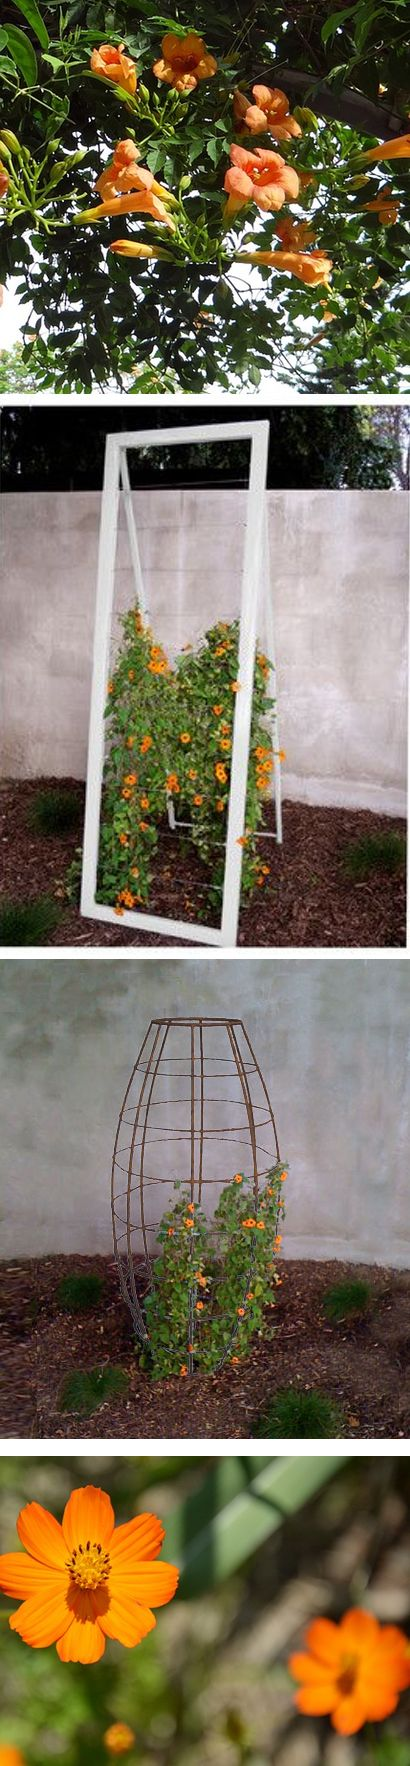 Climbers look lovely against modern trellises. Contrast or match the flower color in many beautiful combinations.